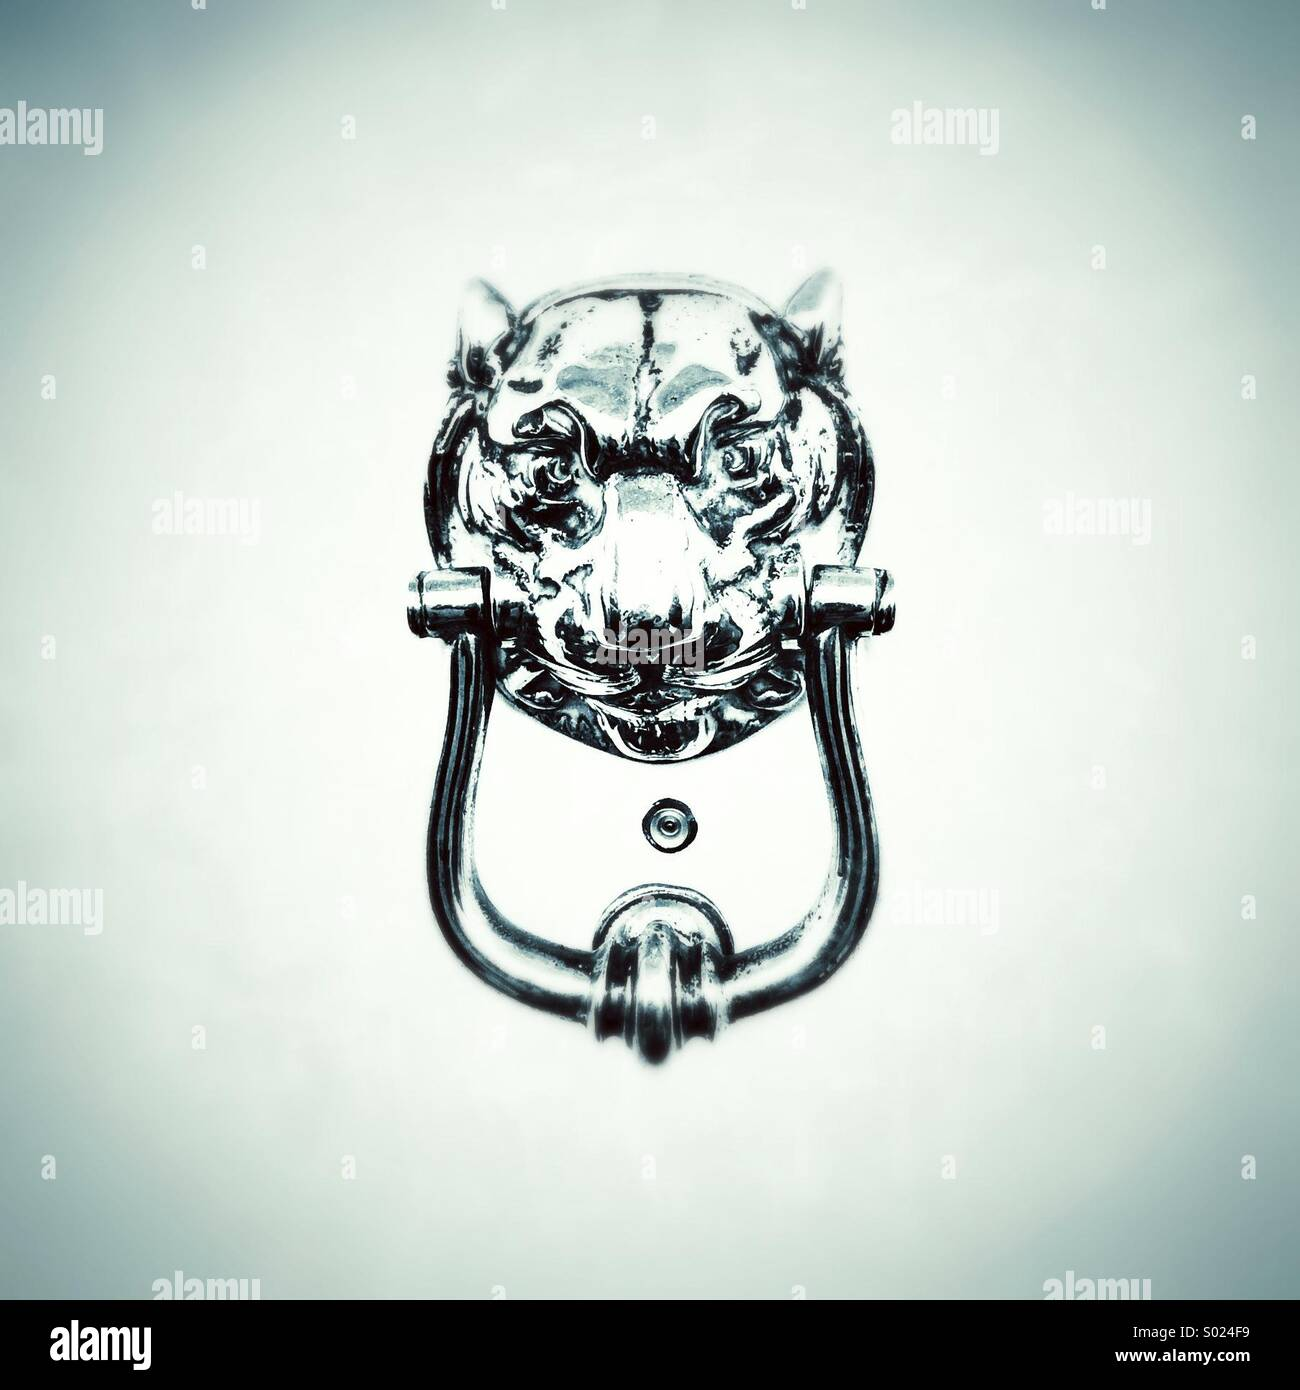 Lions head knocker on white door - Stock Image